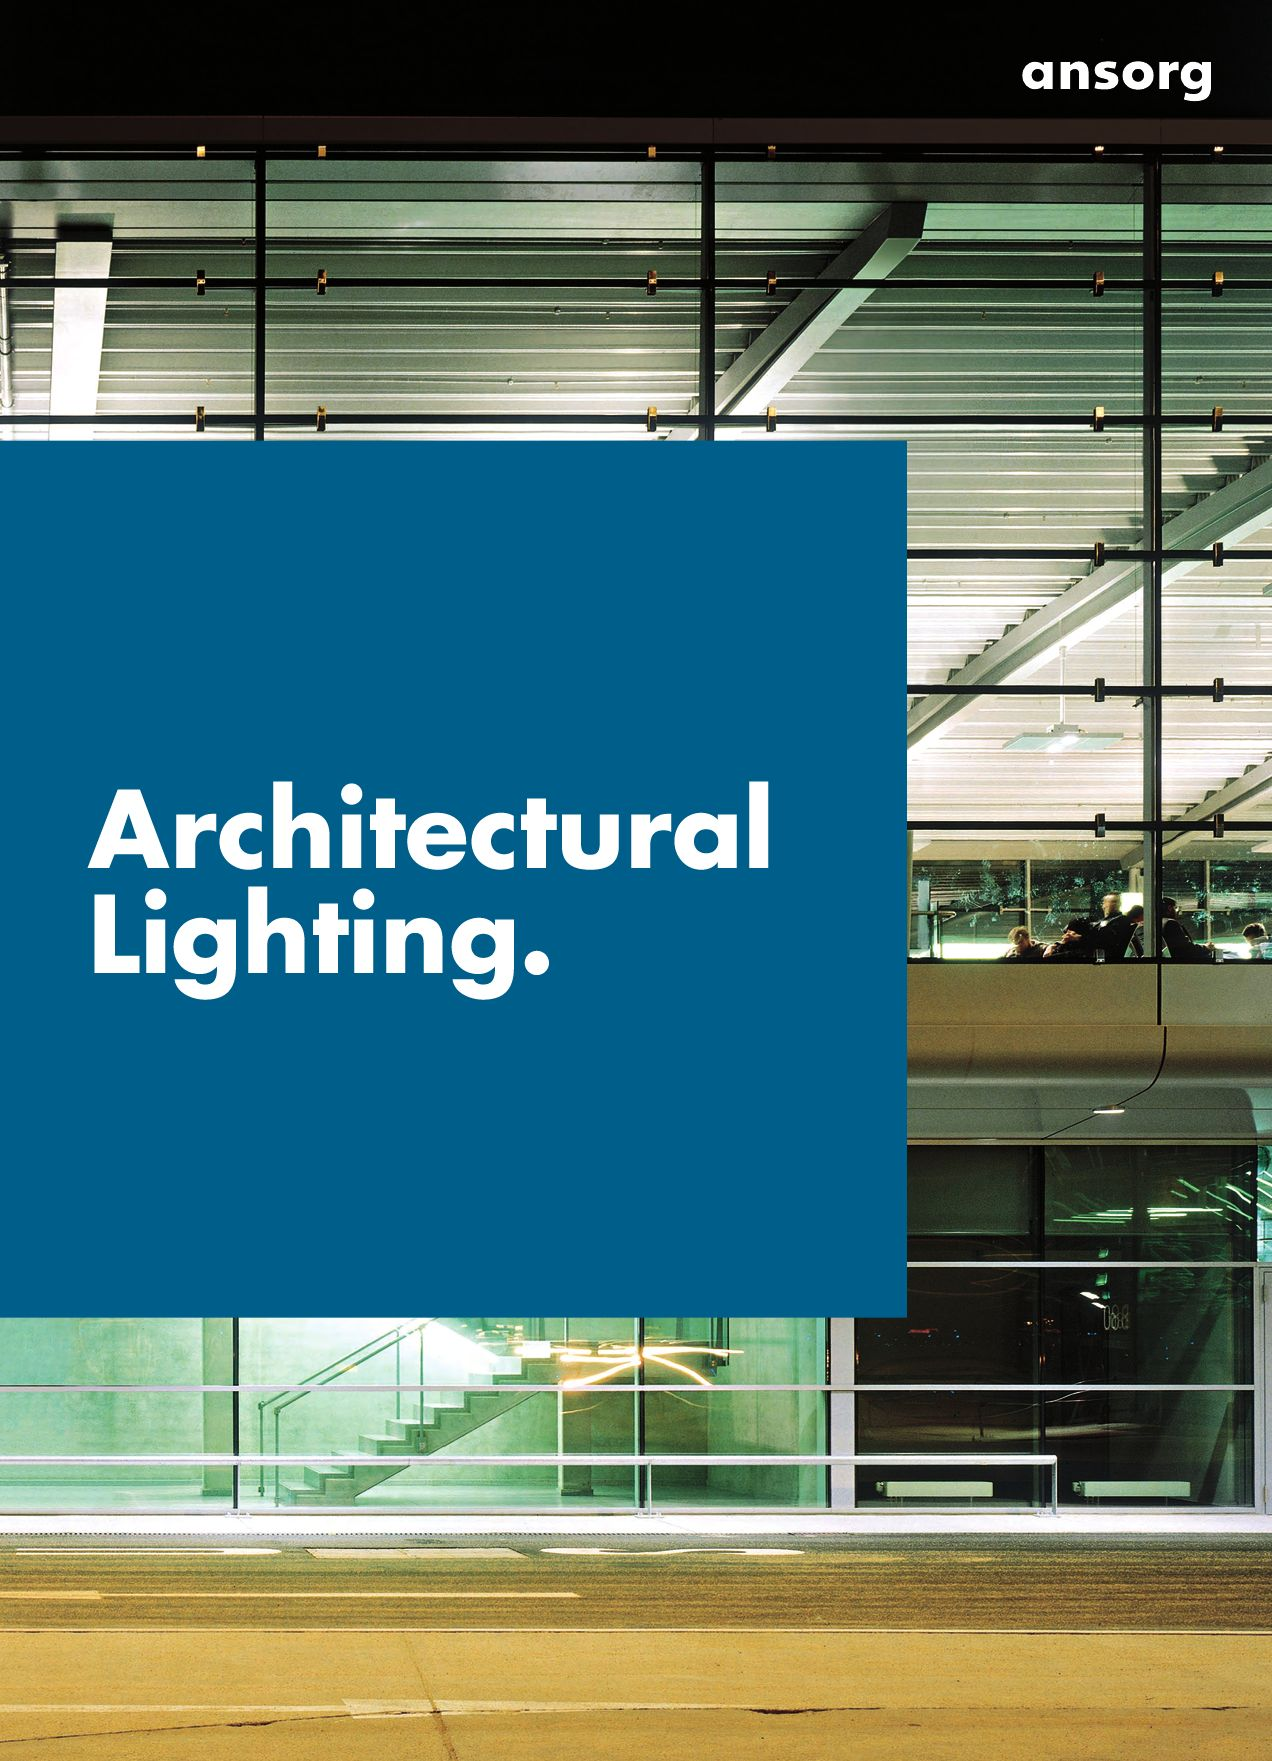 Architectural Lighting From Ansorg By Lightonline Issuu